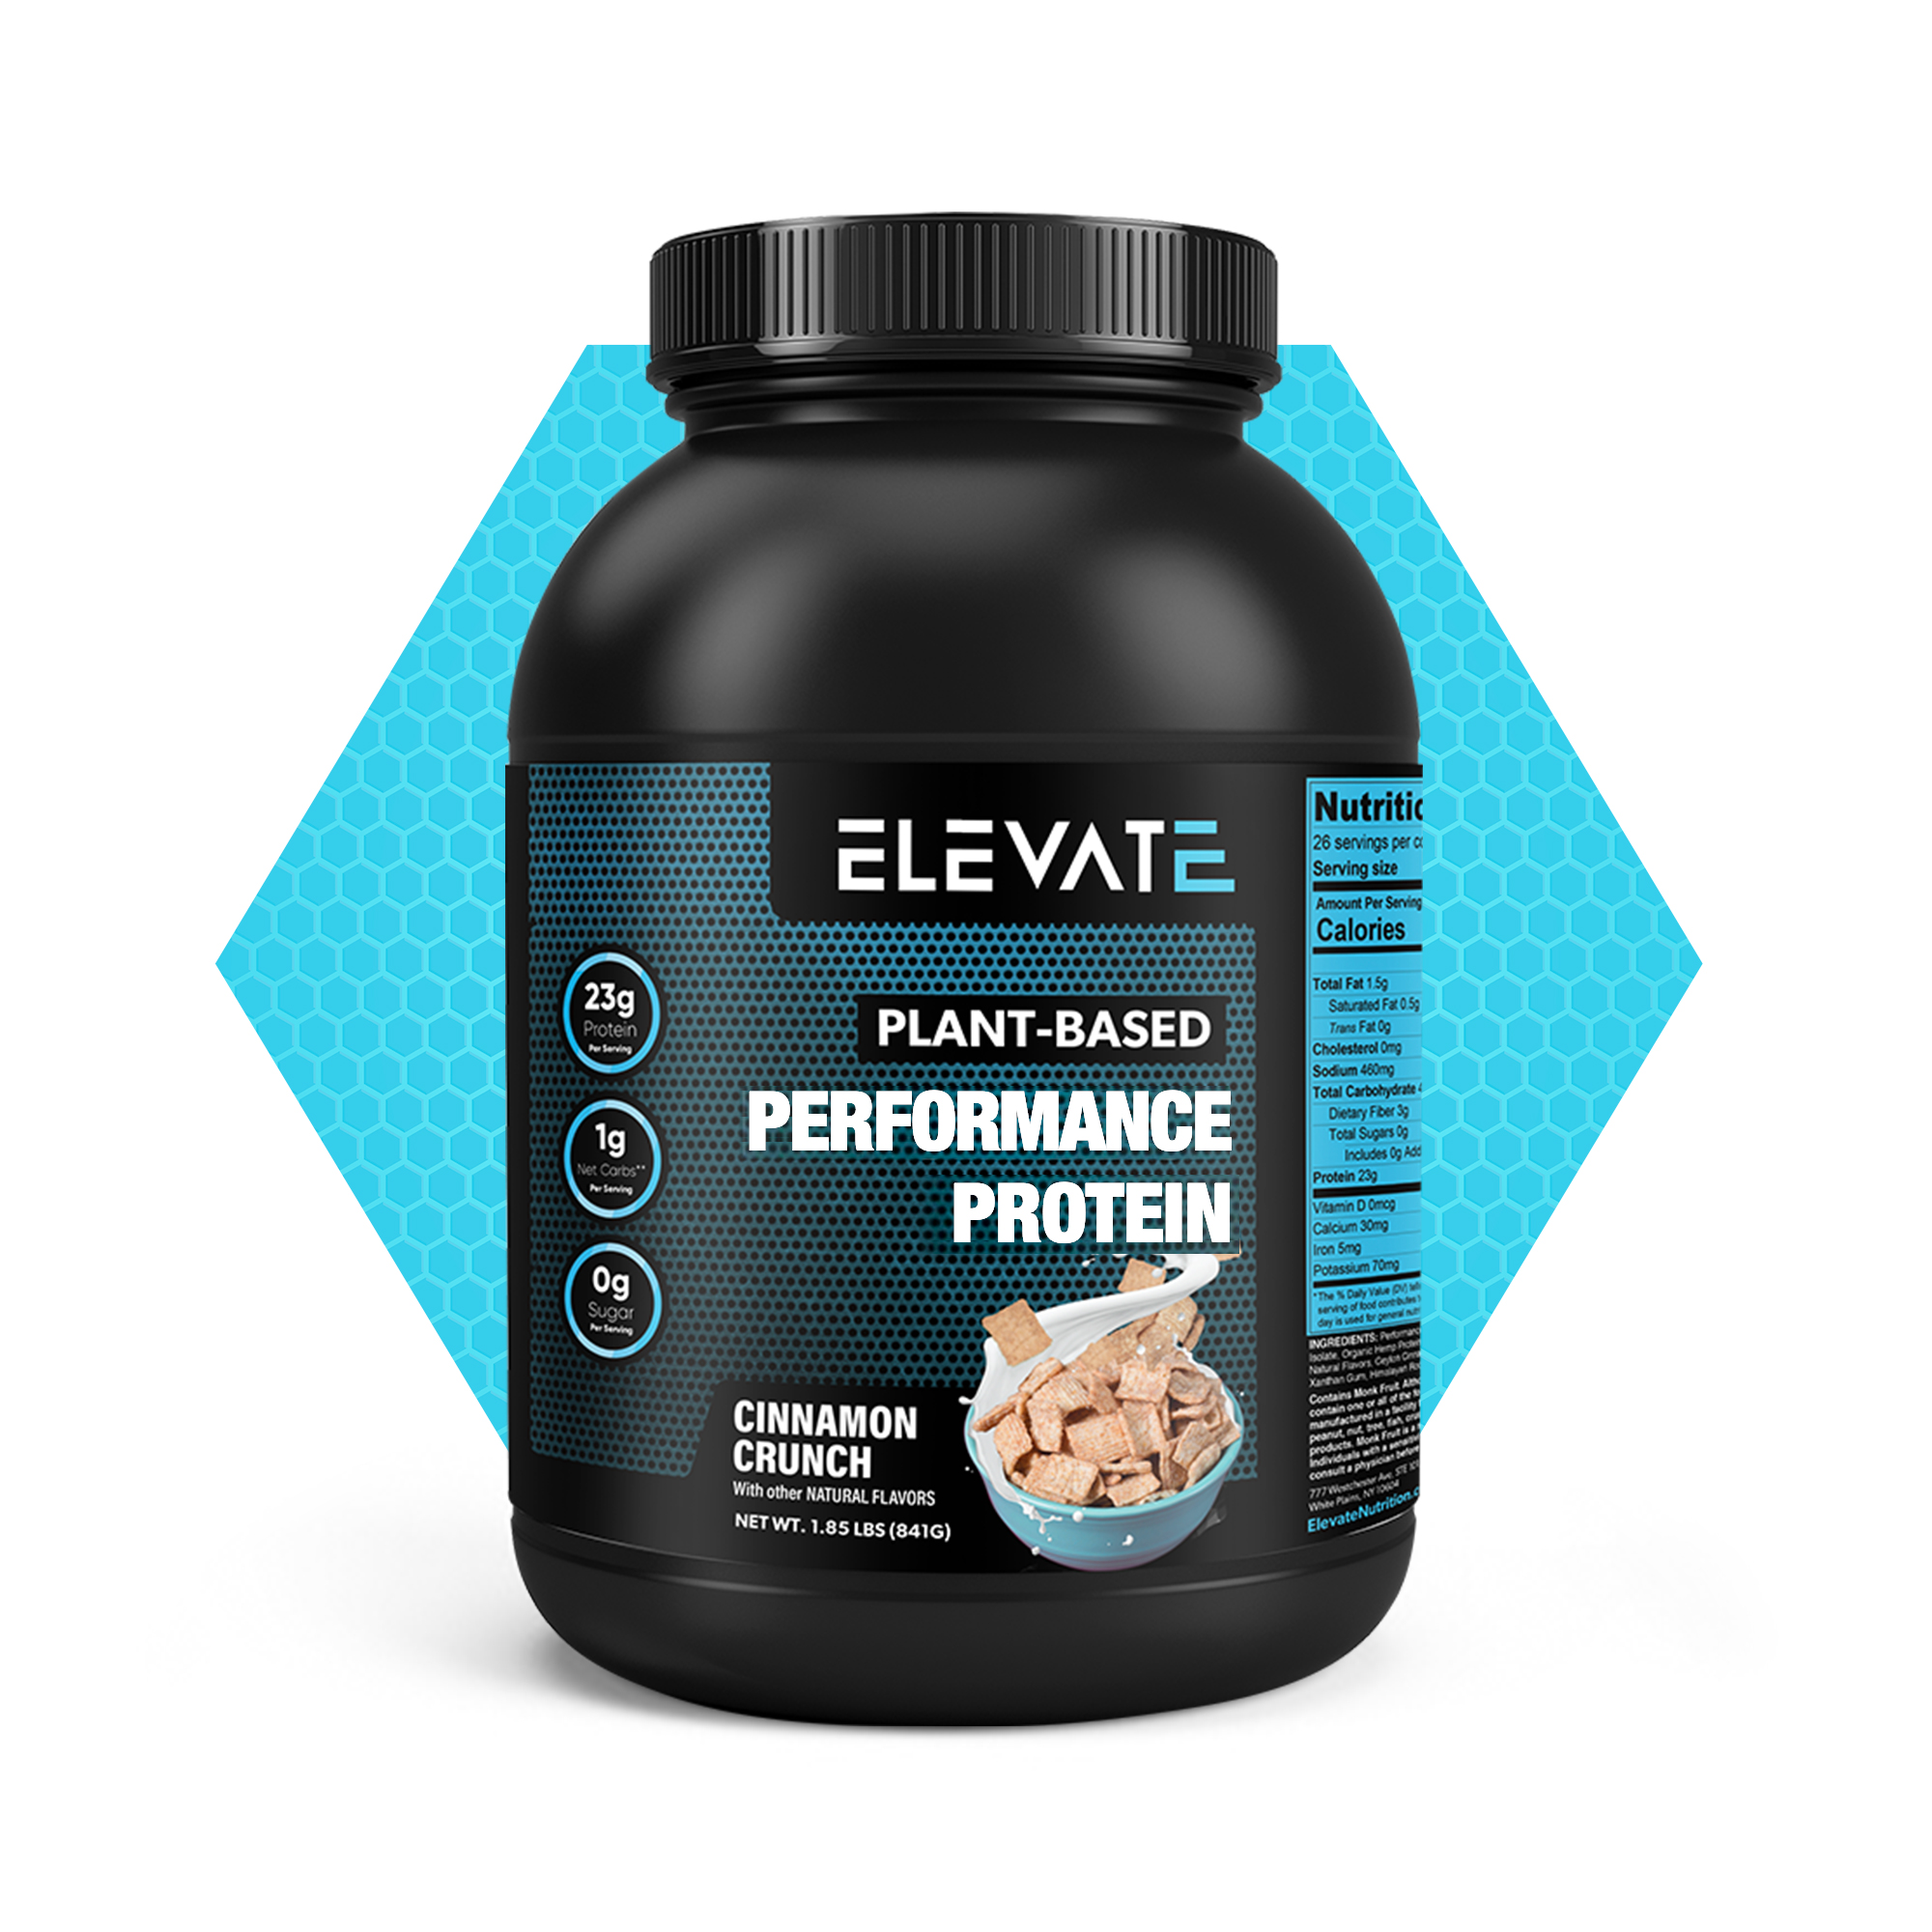 plant based performance protein cinnamon crunch by Elevate 4